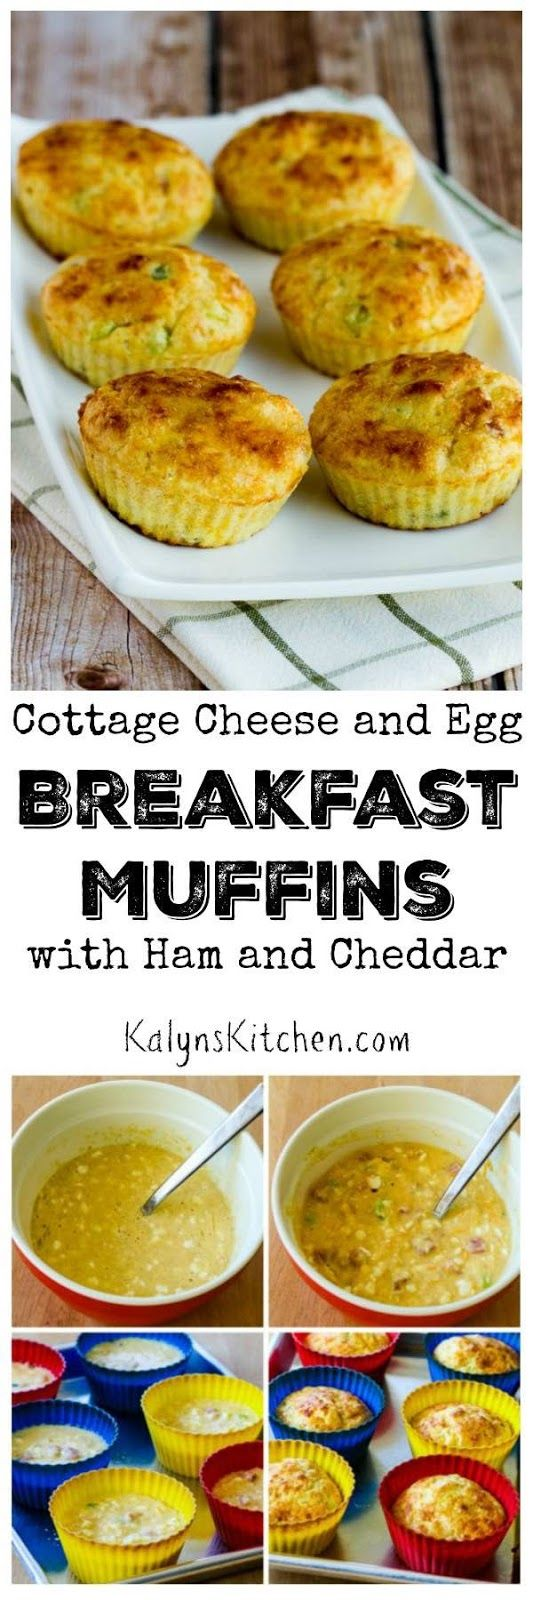 """Cottage Cheese and Egg Breakfast Muffins with Ham and Cheddar are perfect to make on the weekend and reheat during the week for a quick breakfast. These """"muffins"""" have a tiny bit of flour, but they're still a pretty low-carb breakfast choice. [found on KalynsKitchen.com]"""